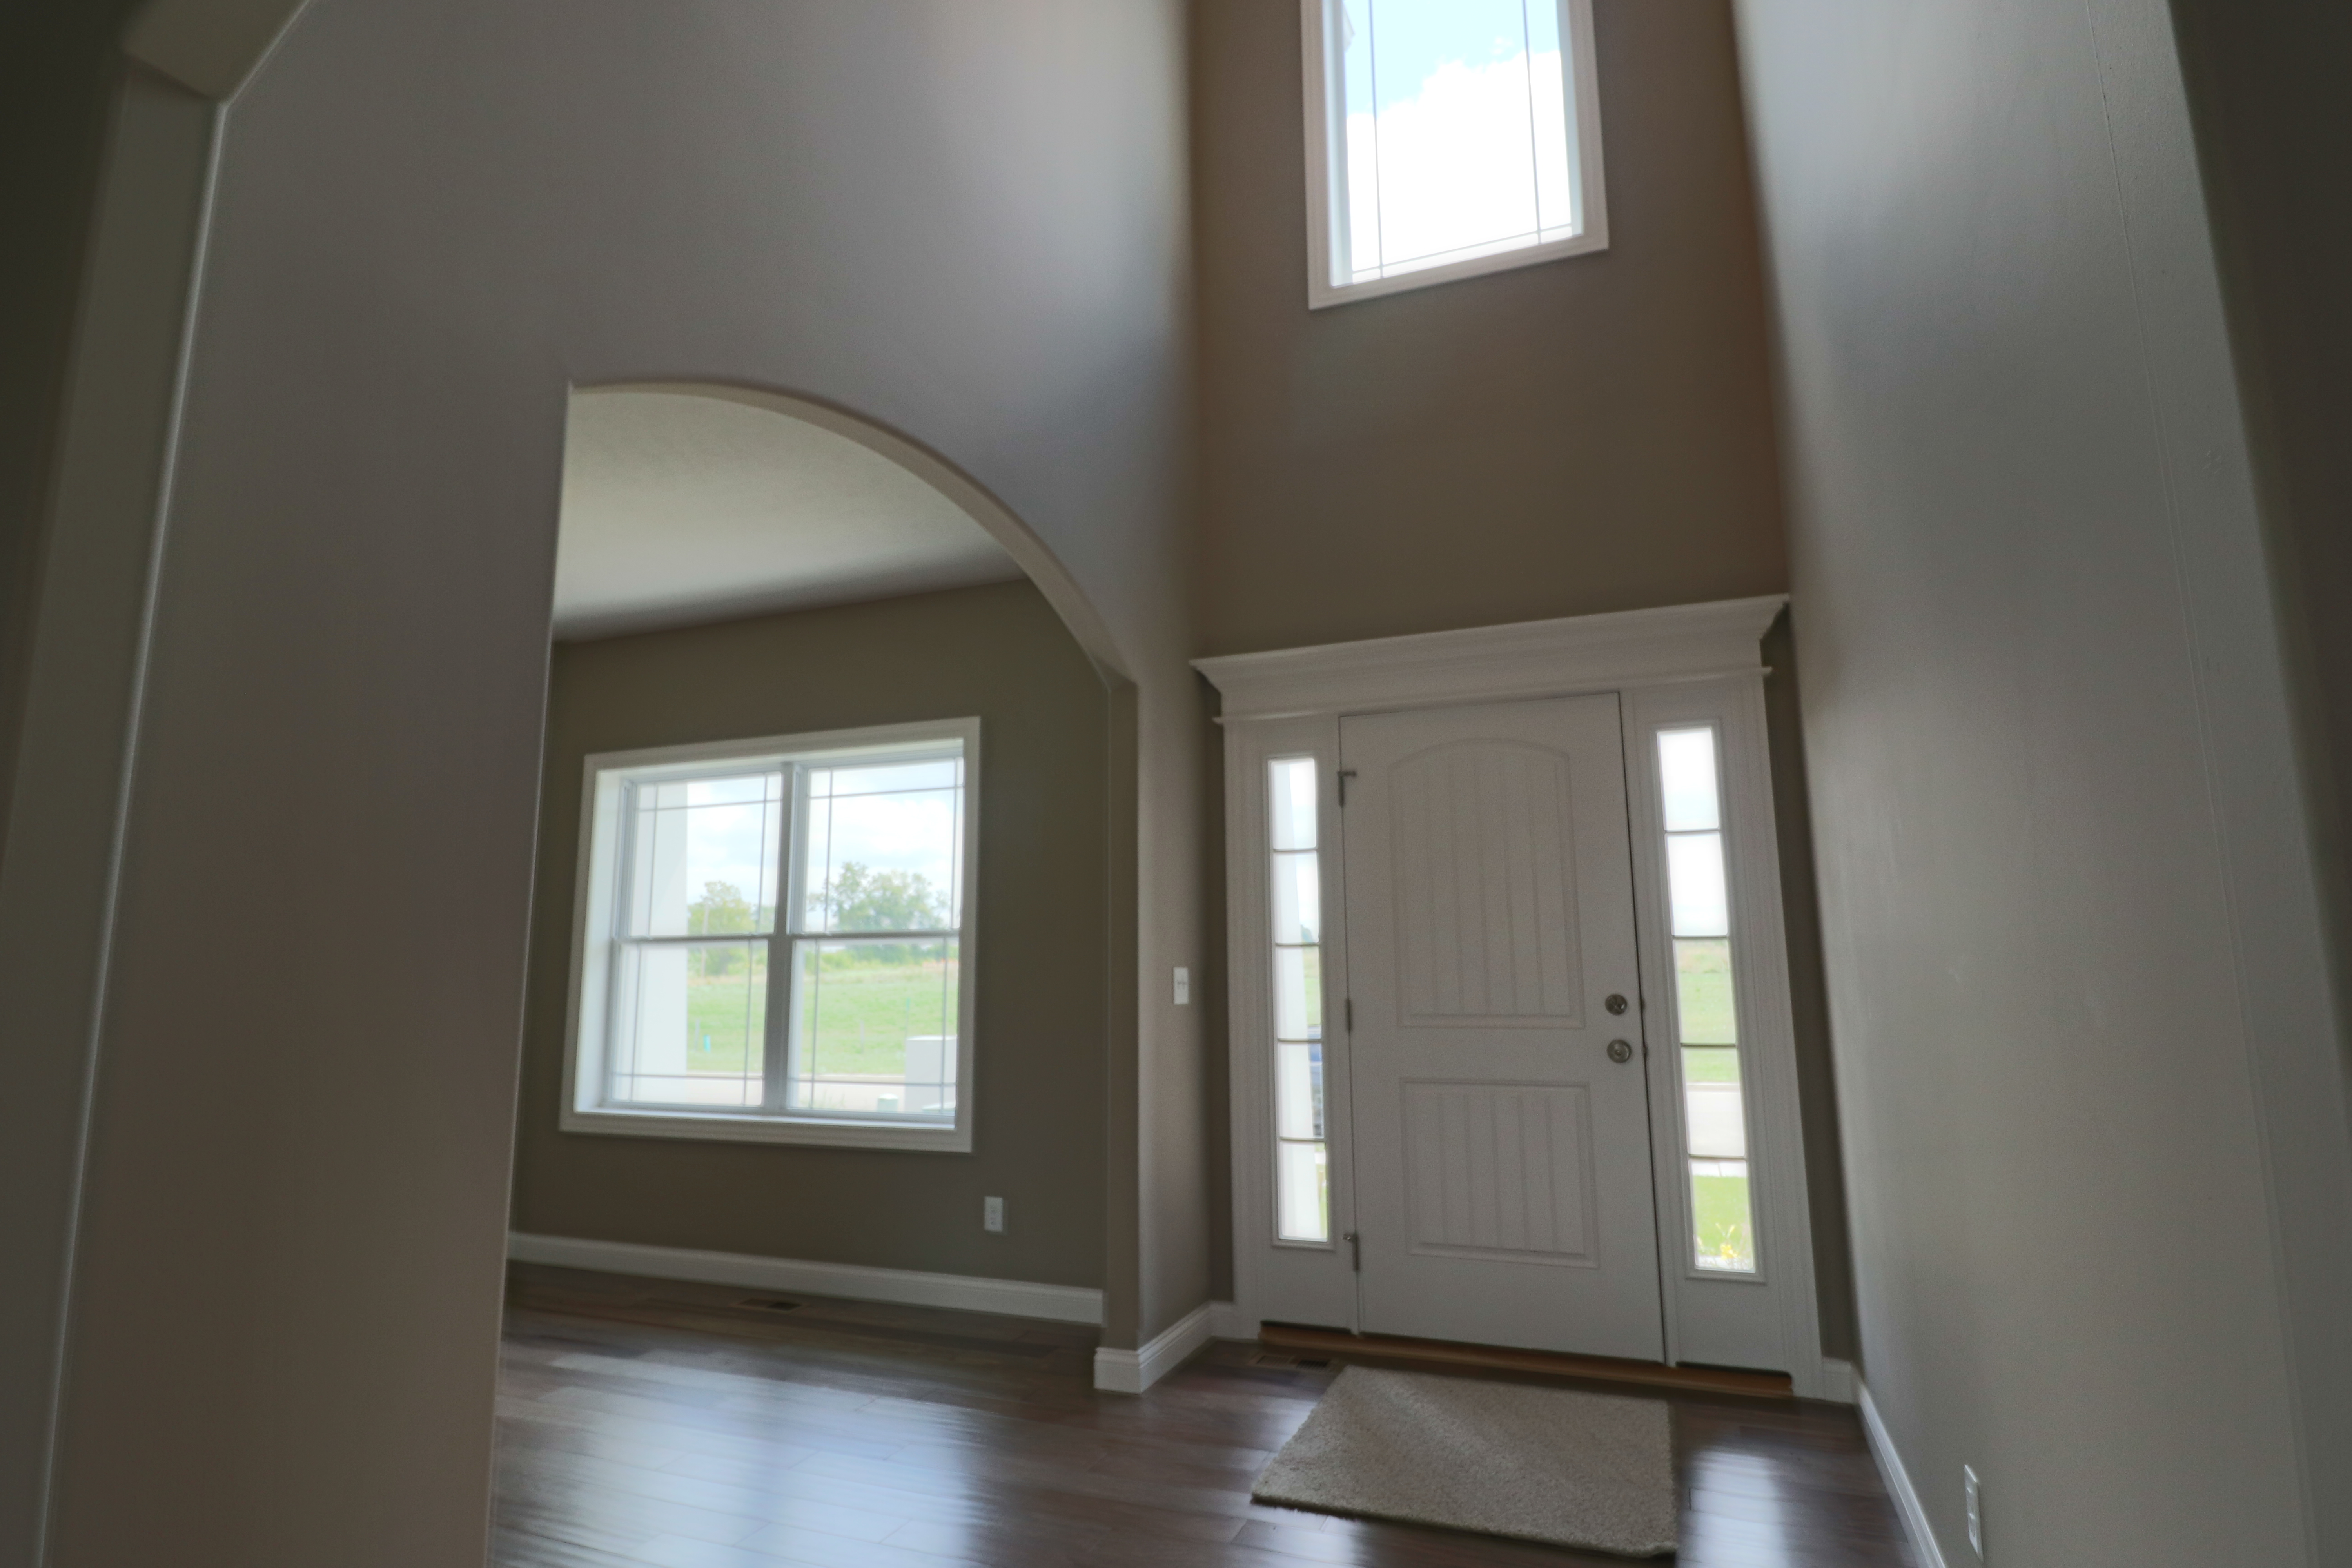 House for sale in the Dunlap peoria area entrance